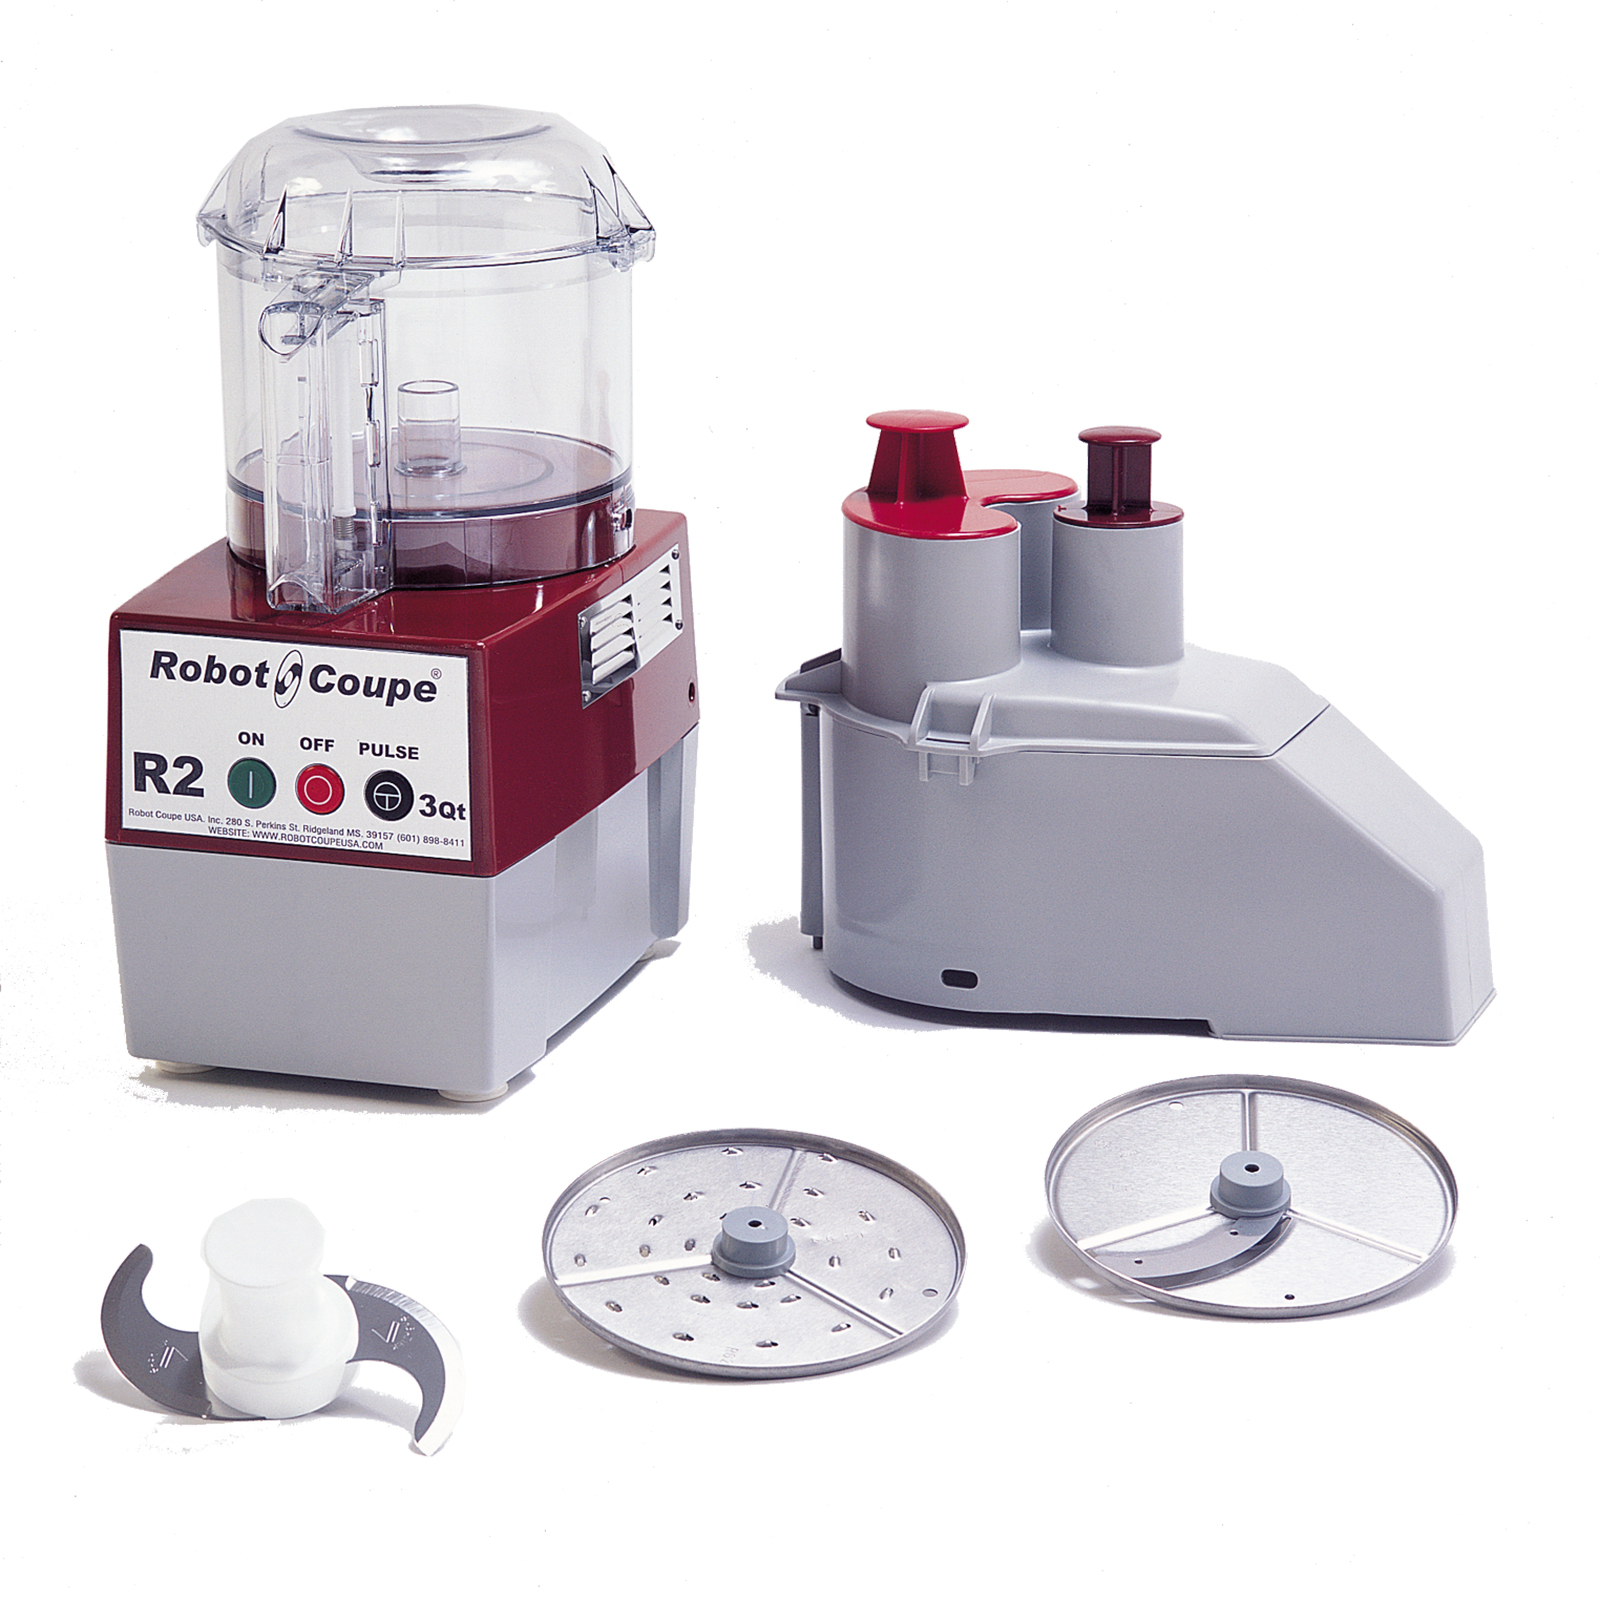 R2N CLR Robot Coupe food processor, benchtop / countertop